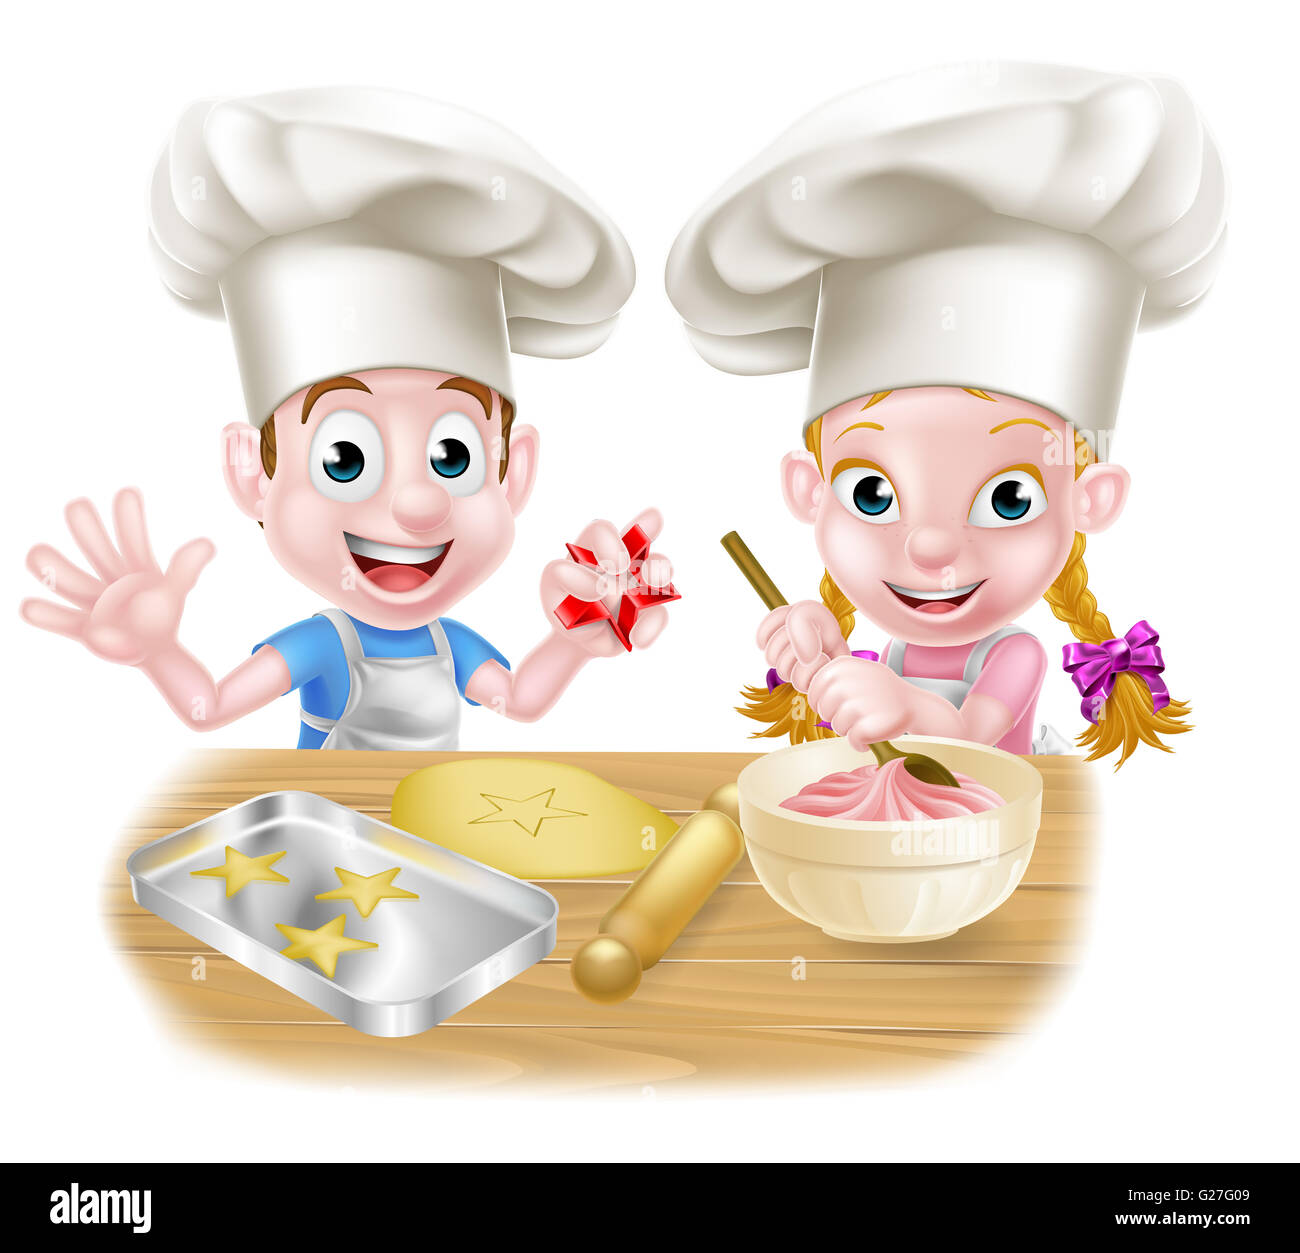 cartoon chef kinder backen kuchen und kekse stockfoto bild 104657737 alamy. Black Bedroom Furniture Sets. Home Design Ideas